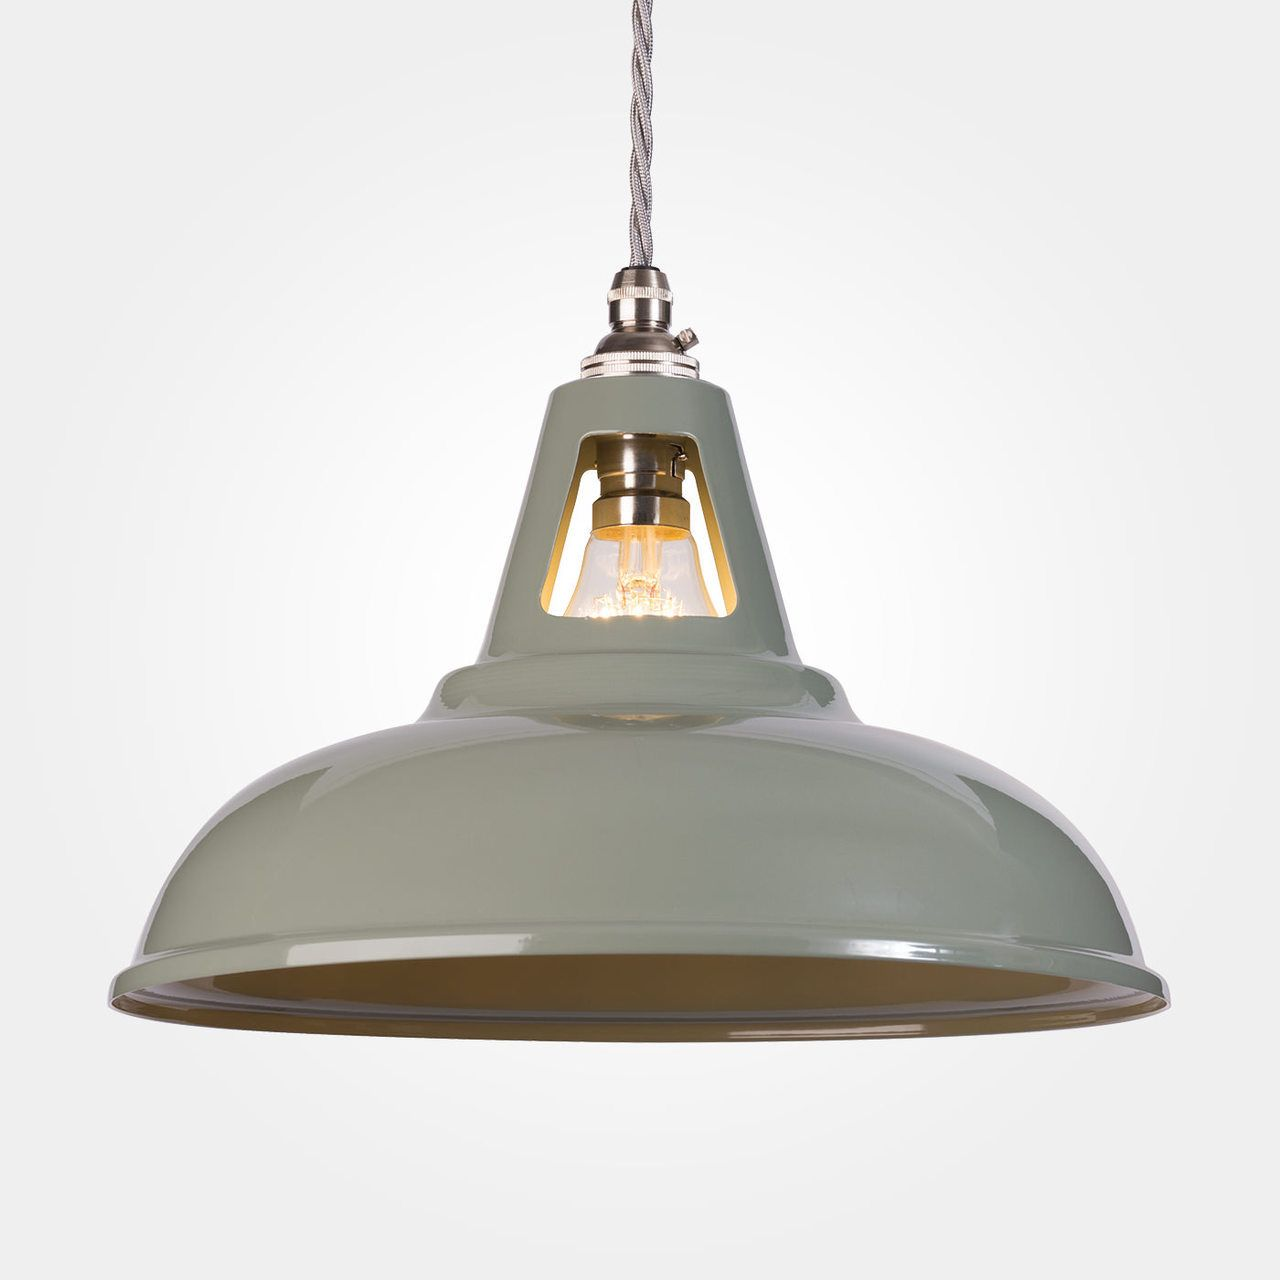 Coolicon industrial pendant light olive grey pendant lamps